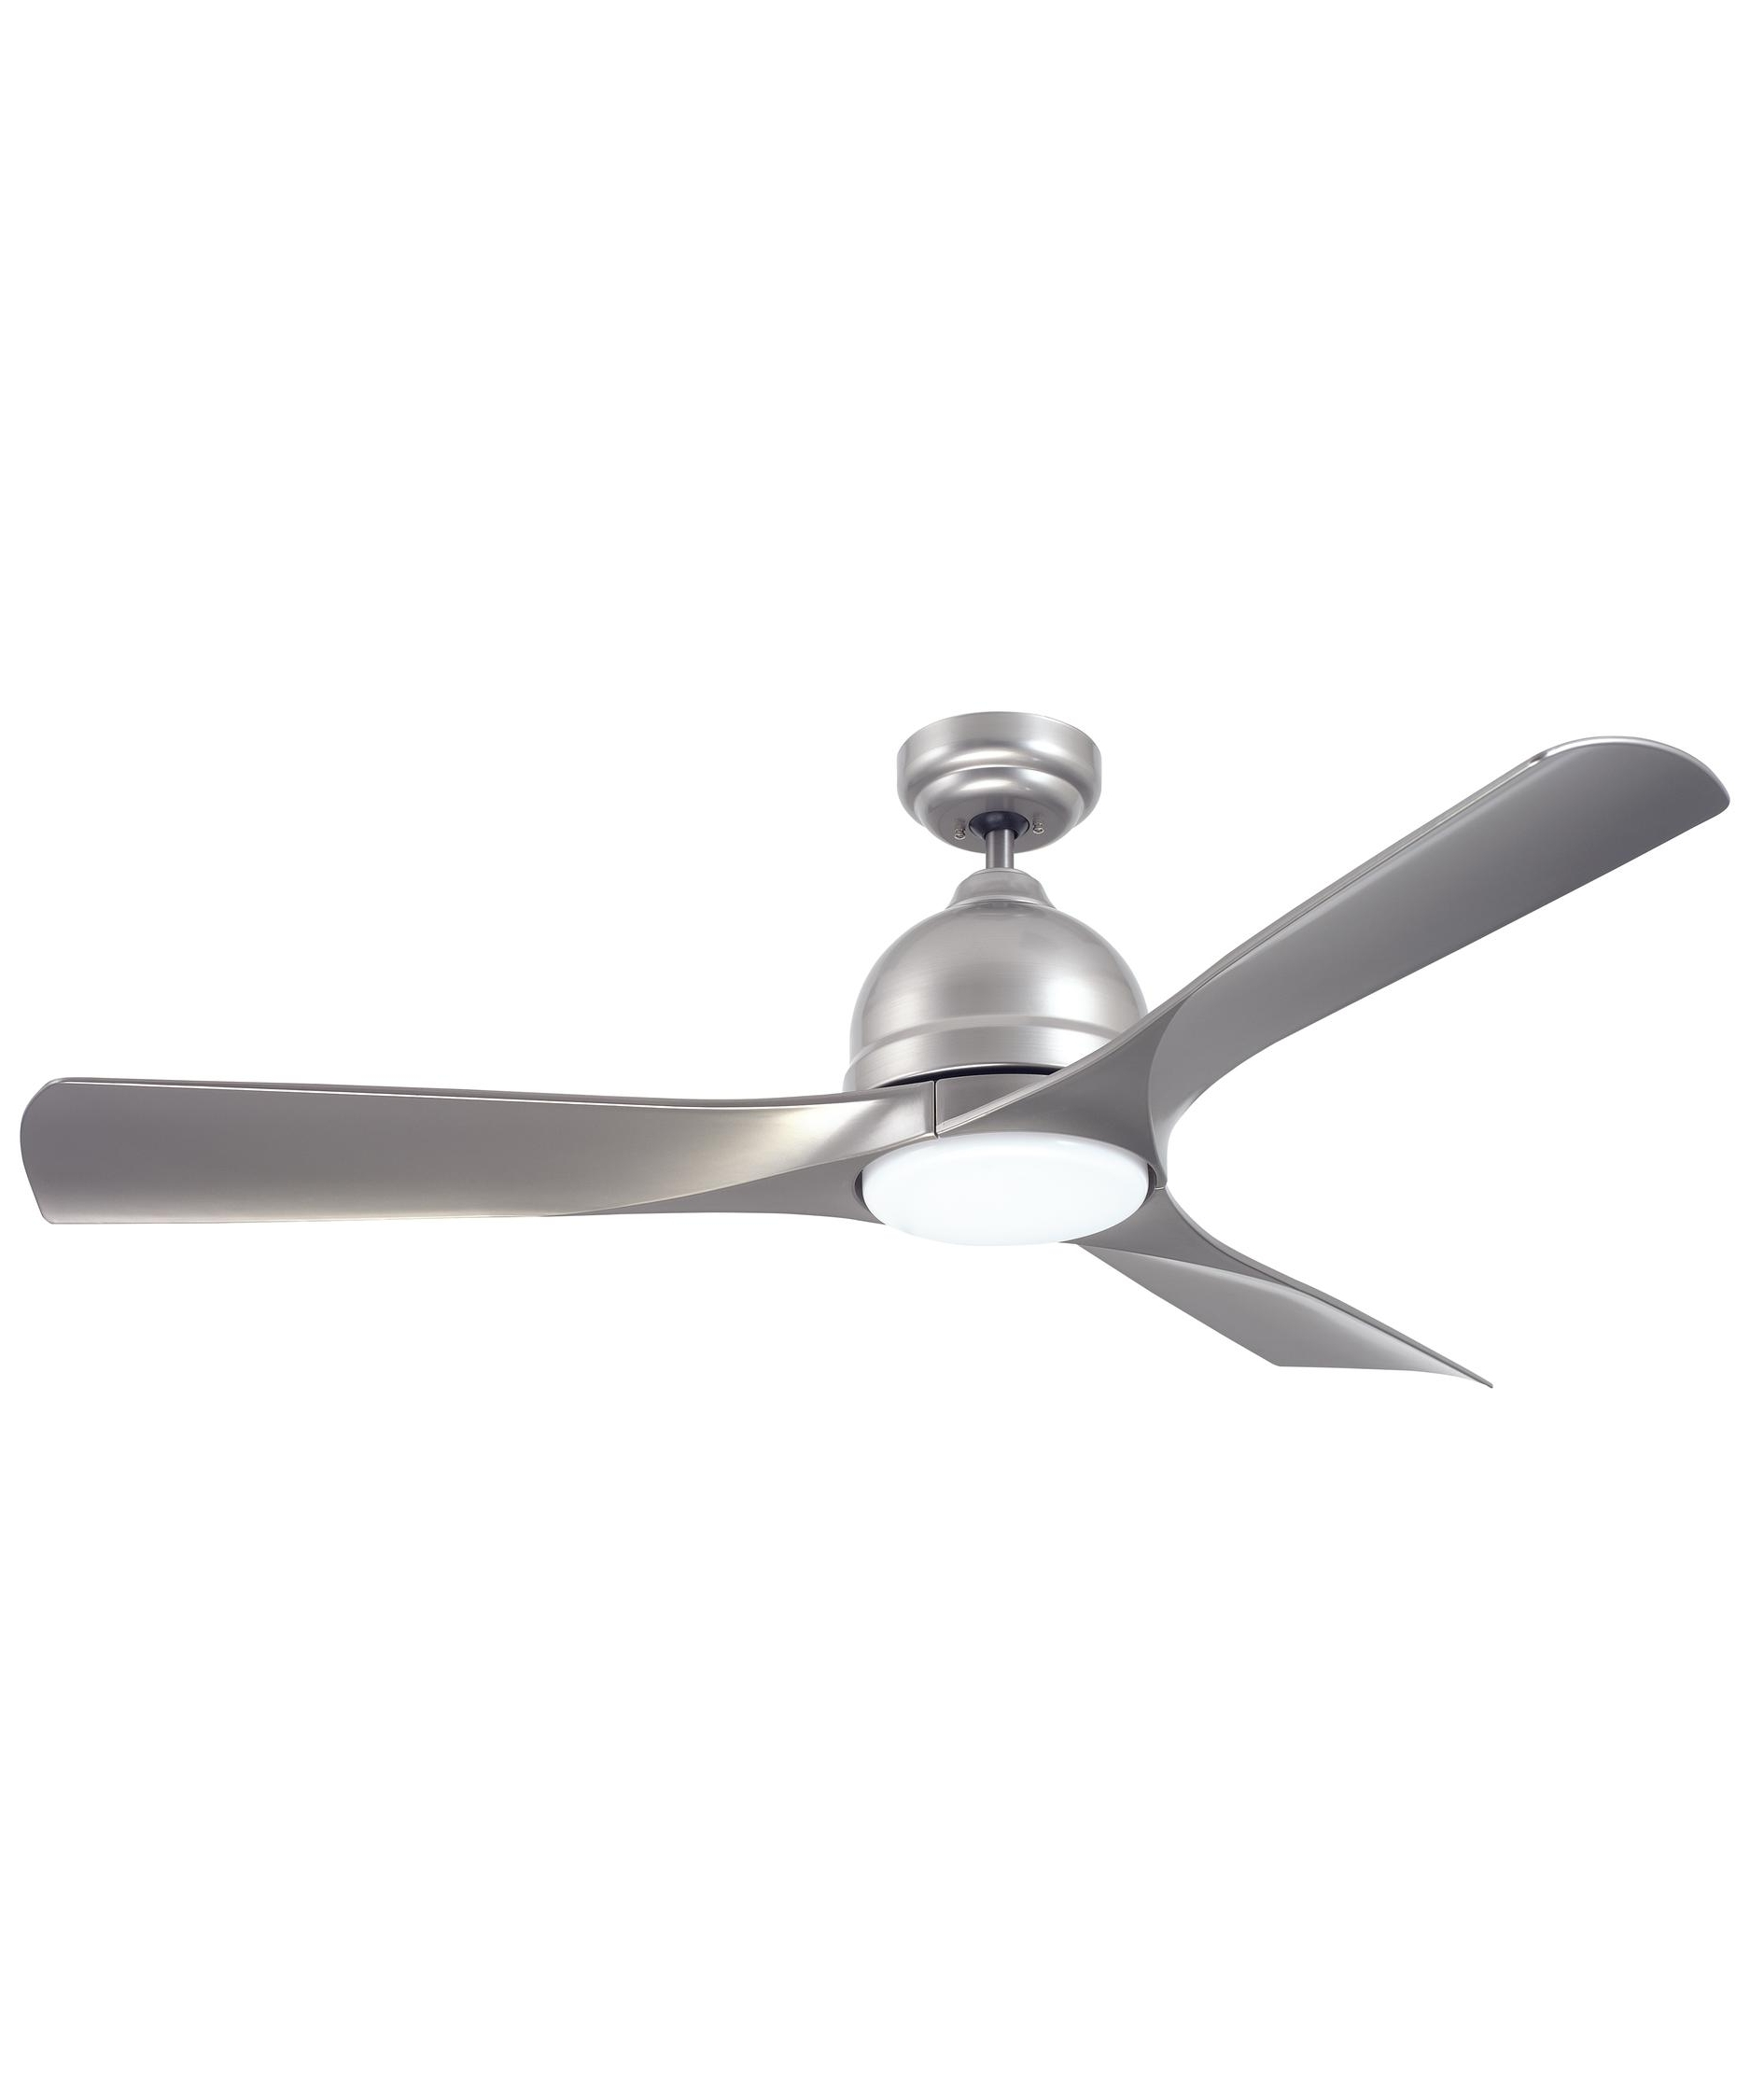 Emerson Cf590 Volta 54 Inch 3 Blade Ceiling Fan (View 3 of 20)